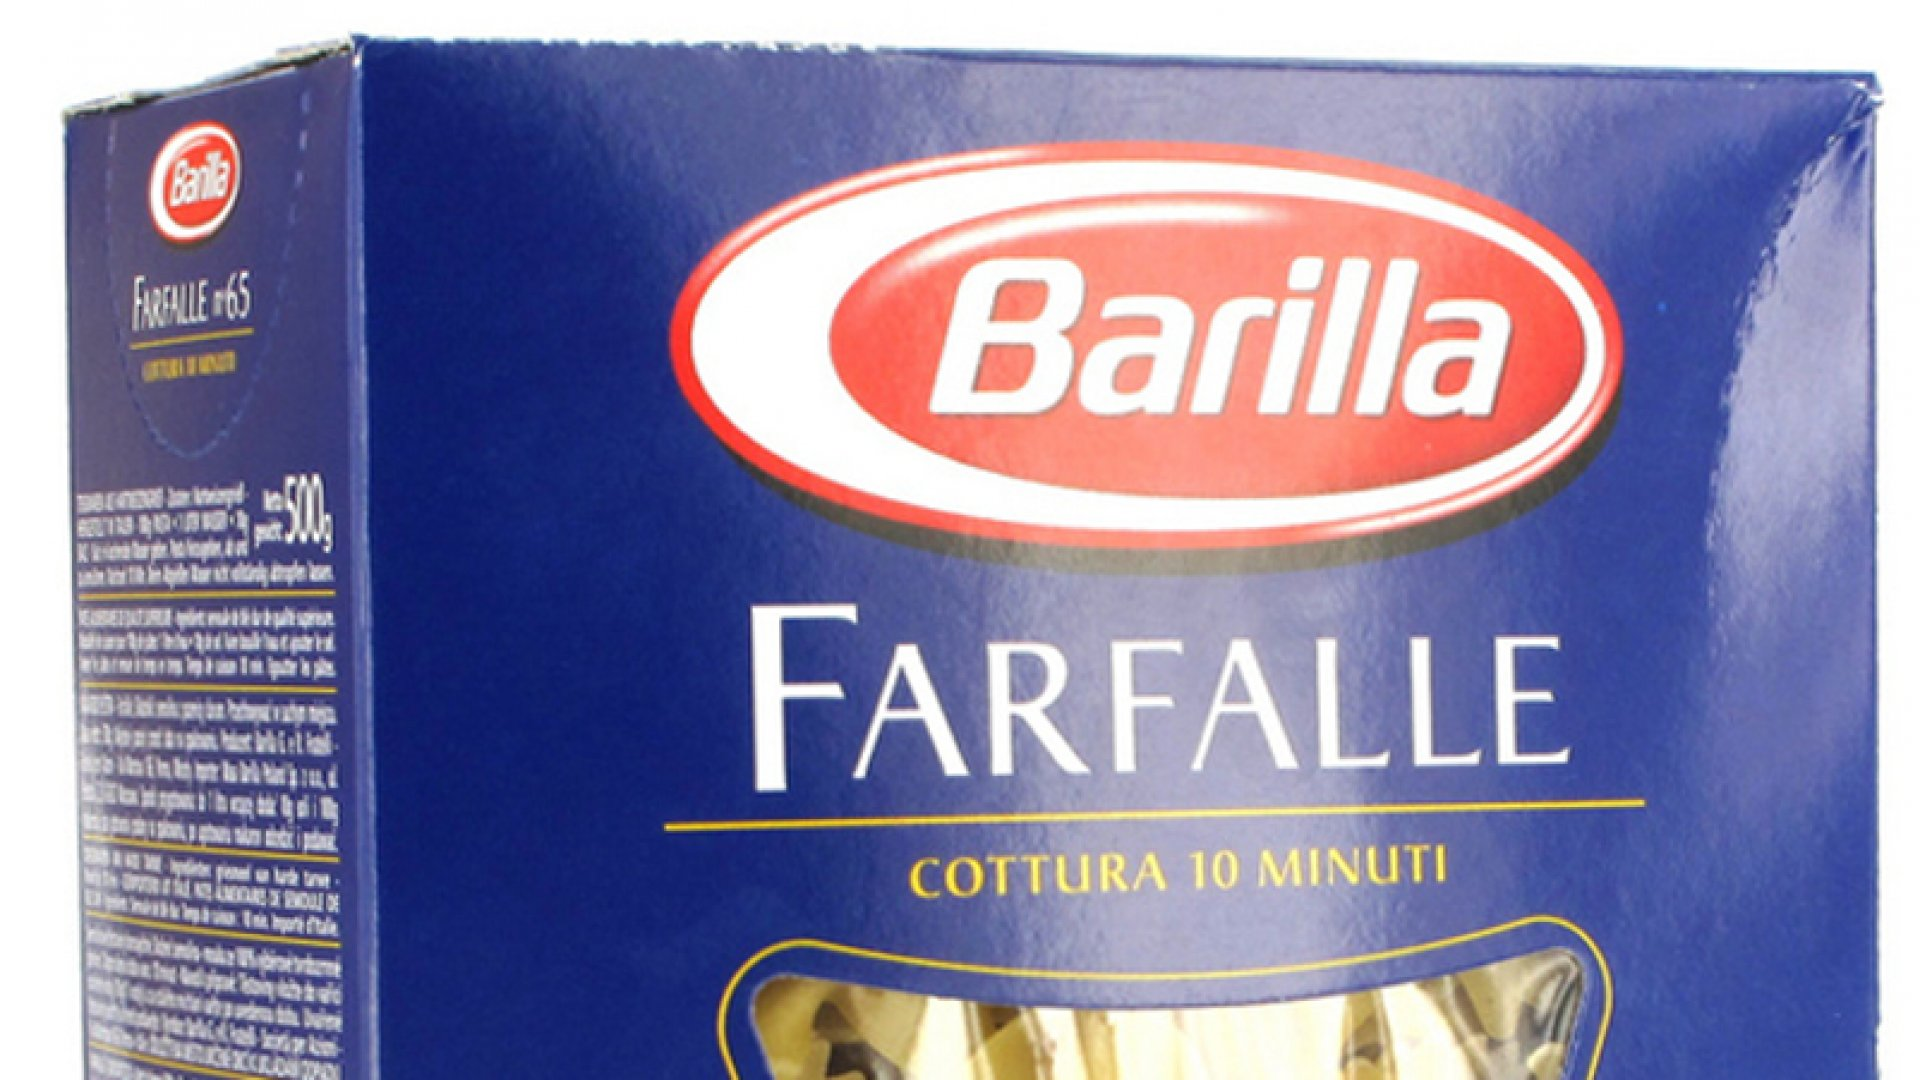 Lessons from Barilla: Keep Your Politics at Home